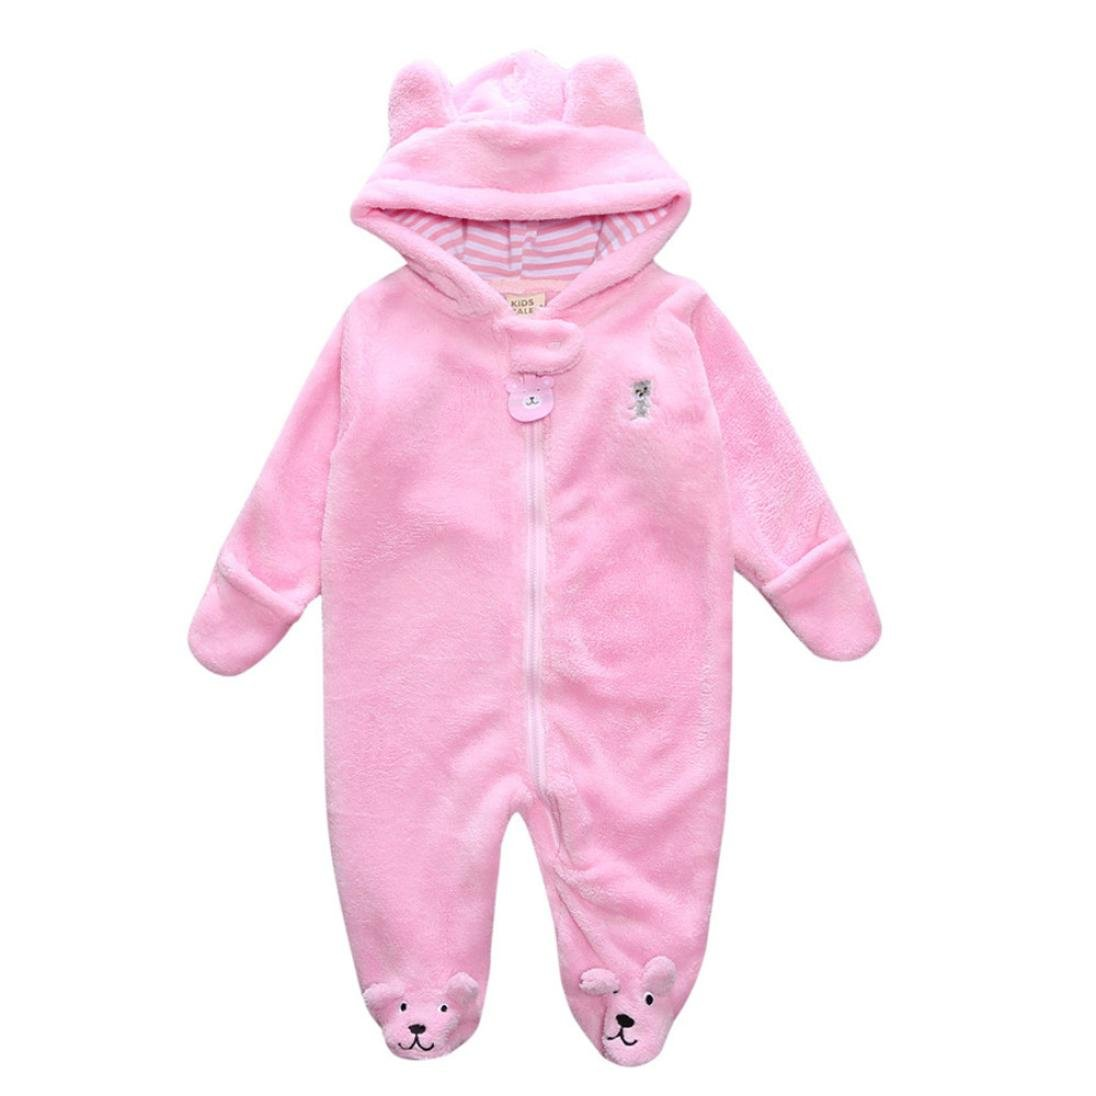 Baby Winter Coat, Egmy Cute Autumn Winter Newborn Baby Infant Boy Girl Bear Hoodie Jumpsuit Romper Clothes (3M, Pink)